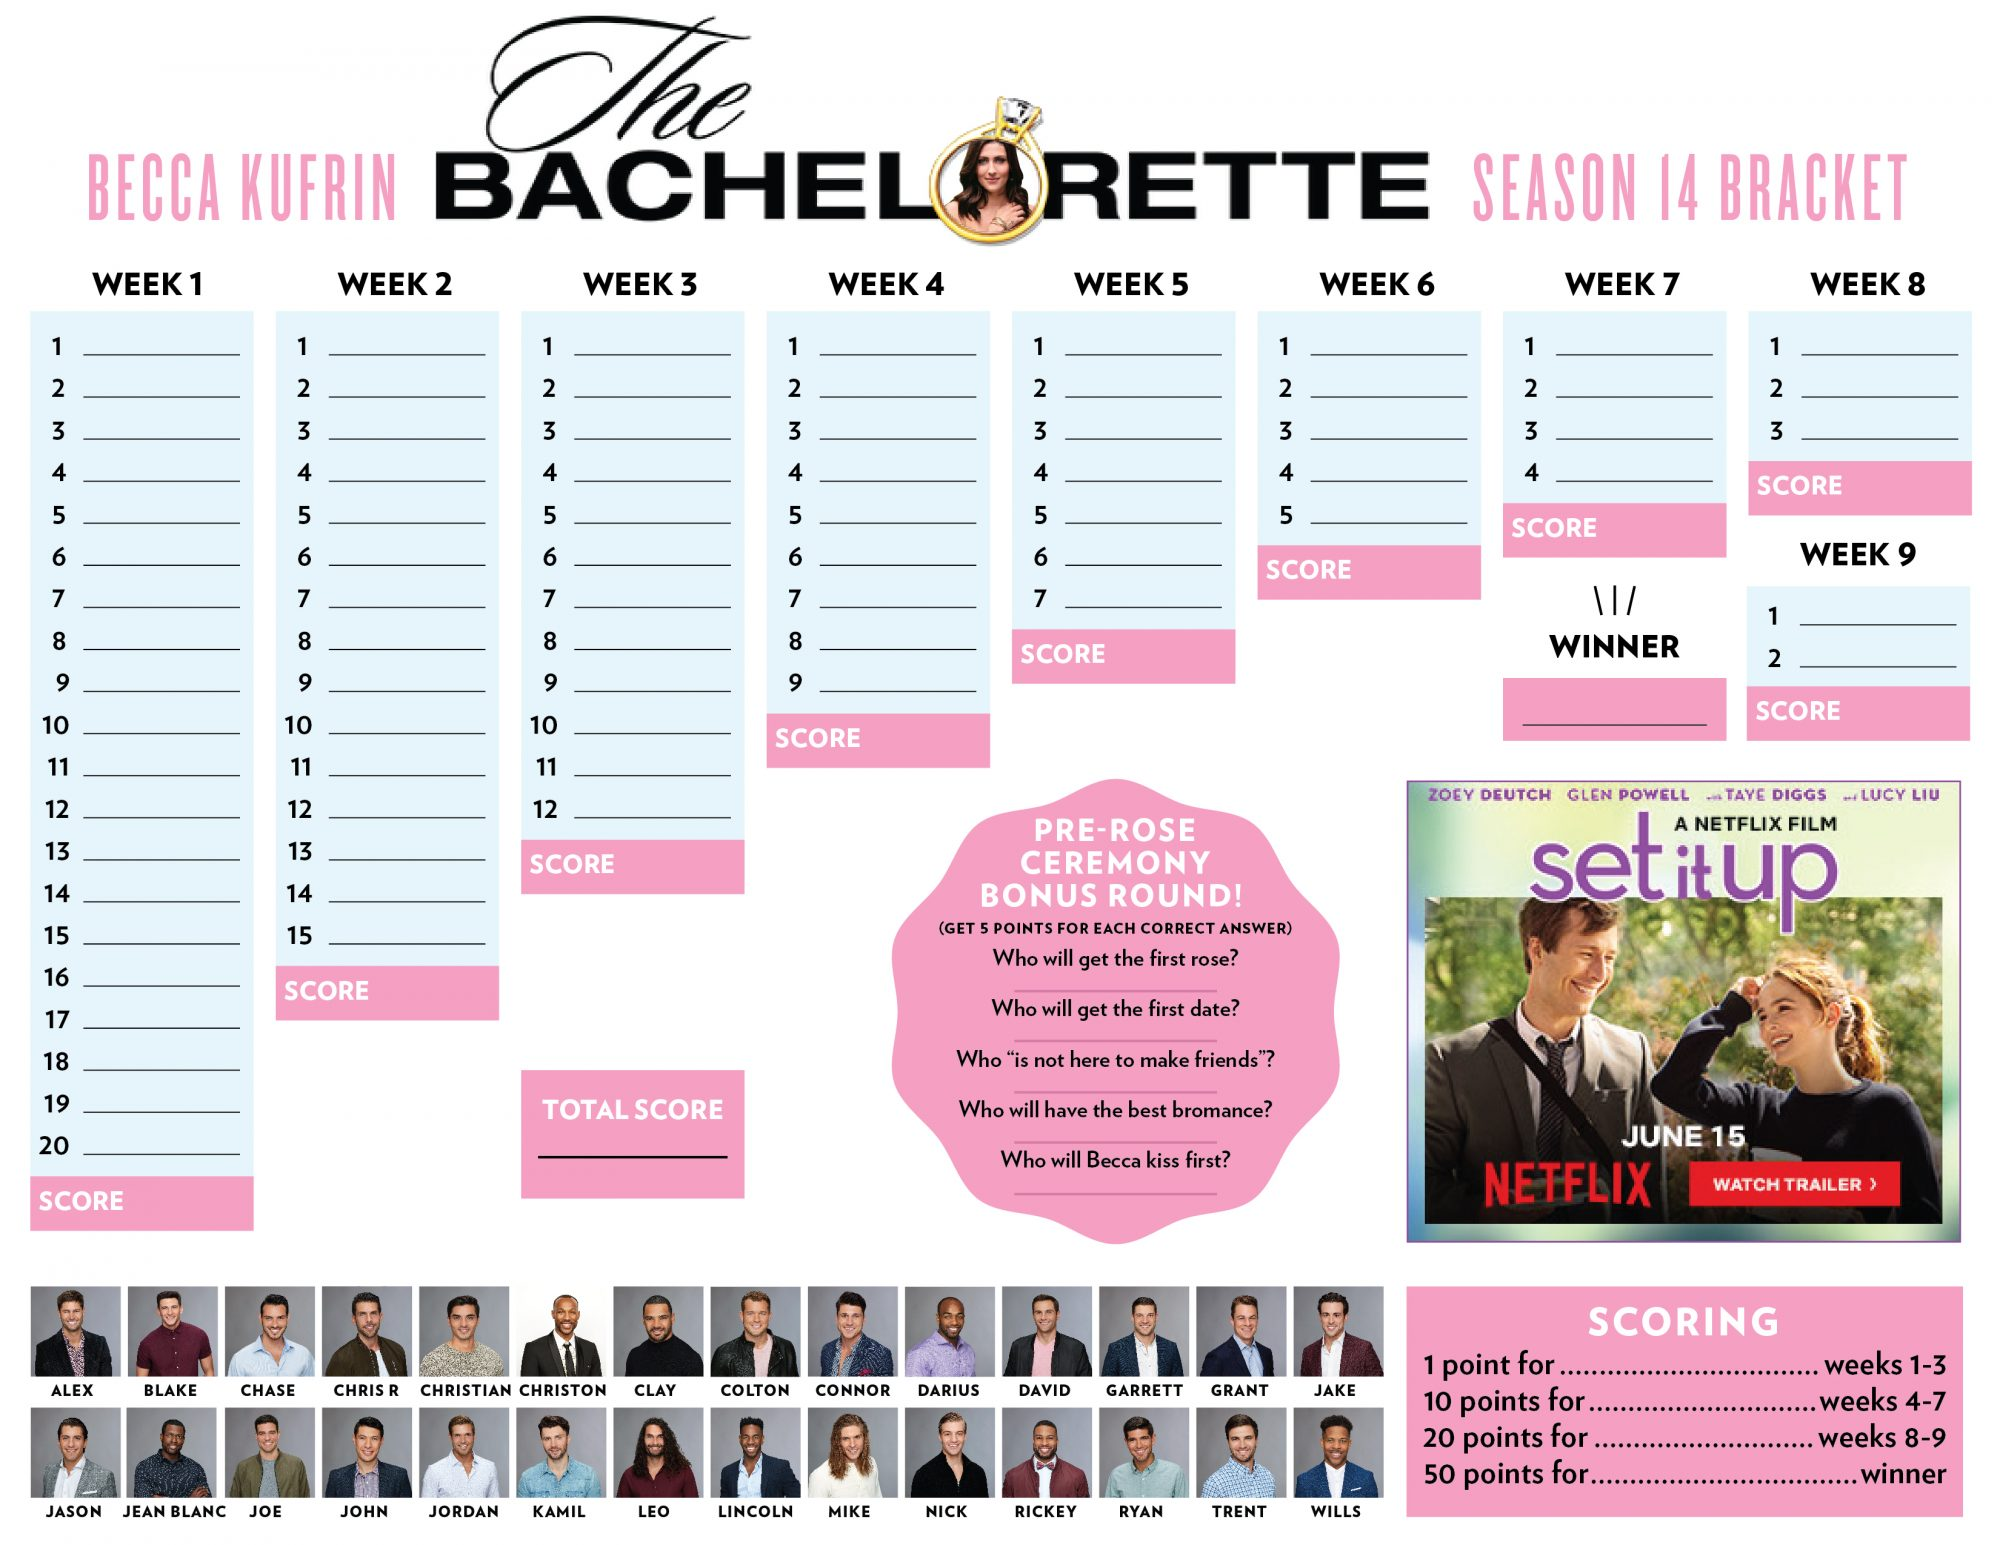 People-Bachelorette Bracket-Final-02